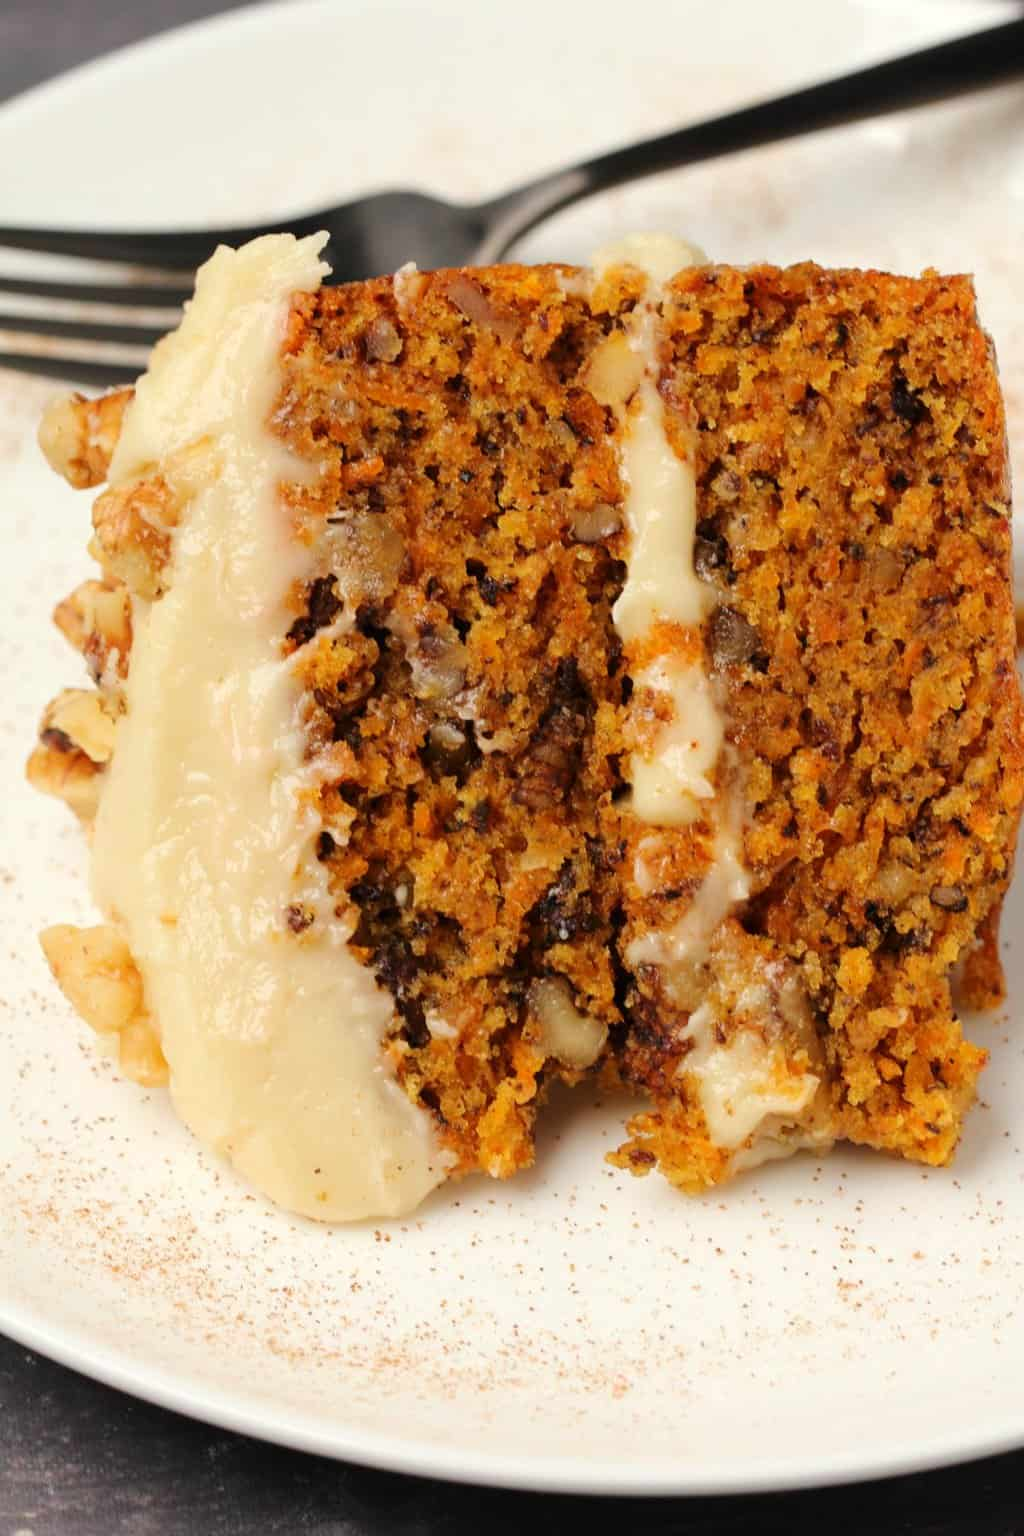 Slice of vegan carrot cake with vegan cream cheese frosting on a white plate.